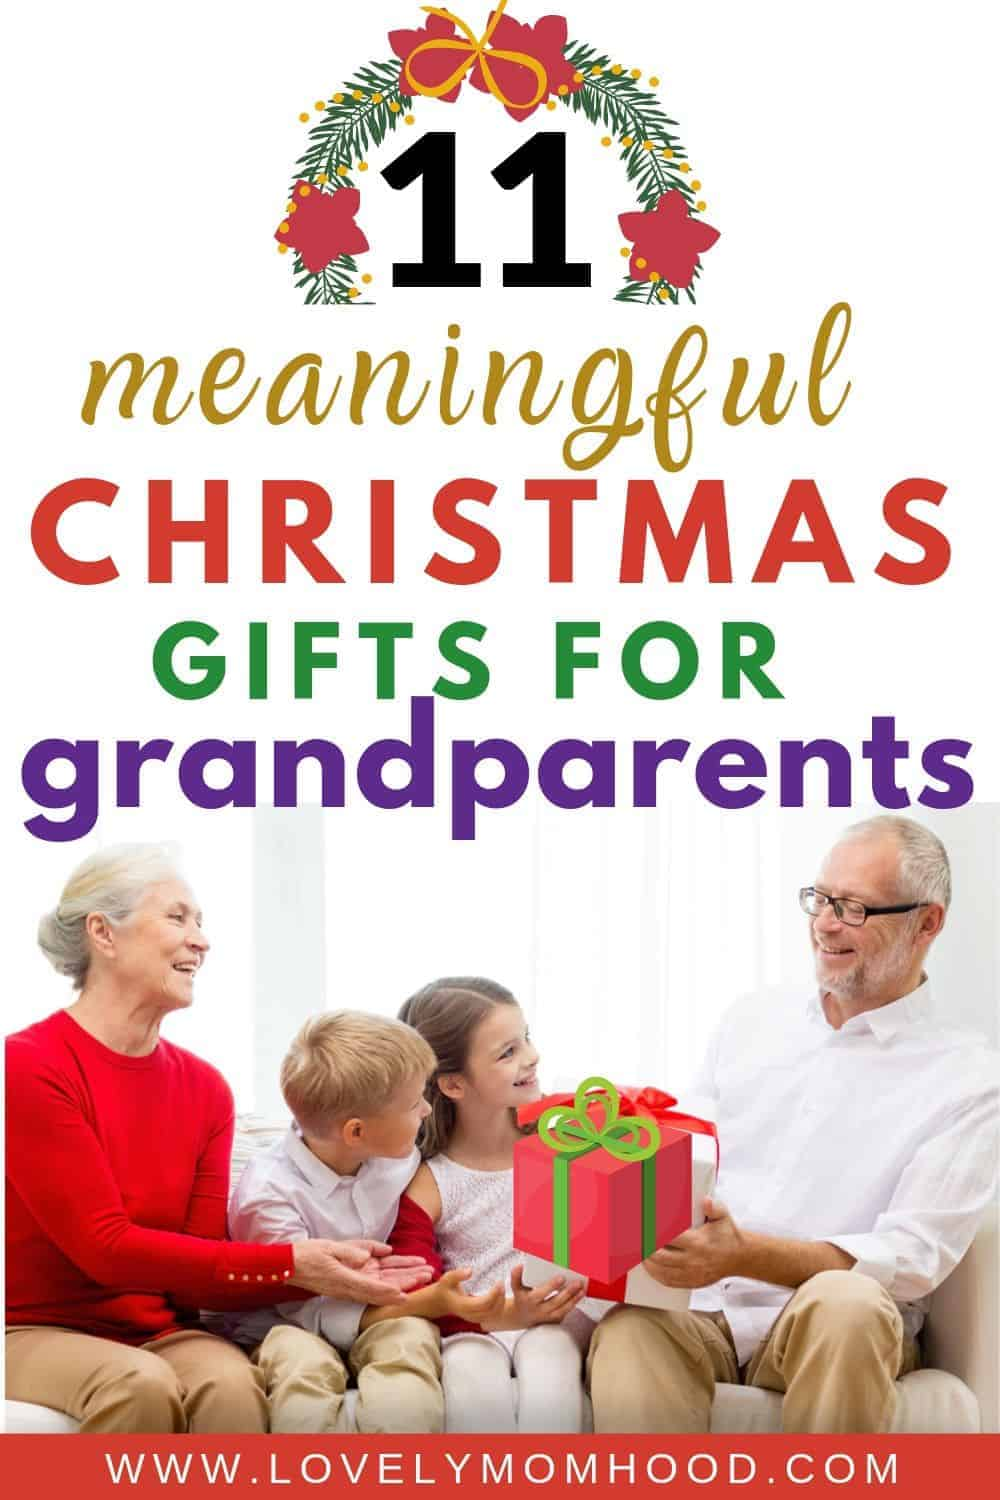 Best Christmas Gift for grandparents, Birthday gifts for grandparents